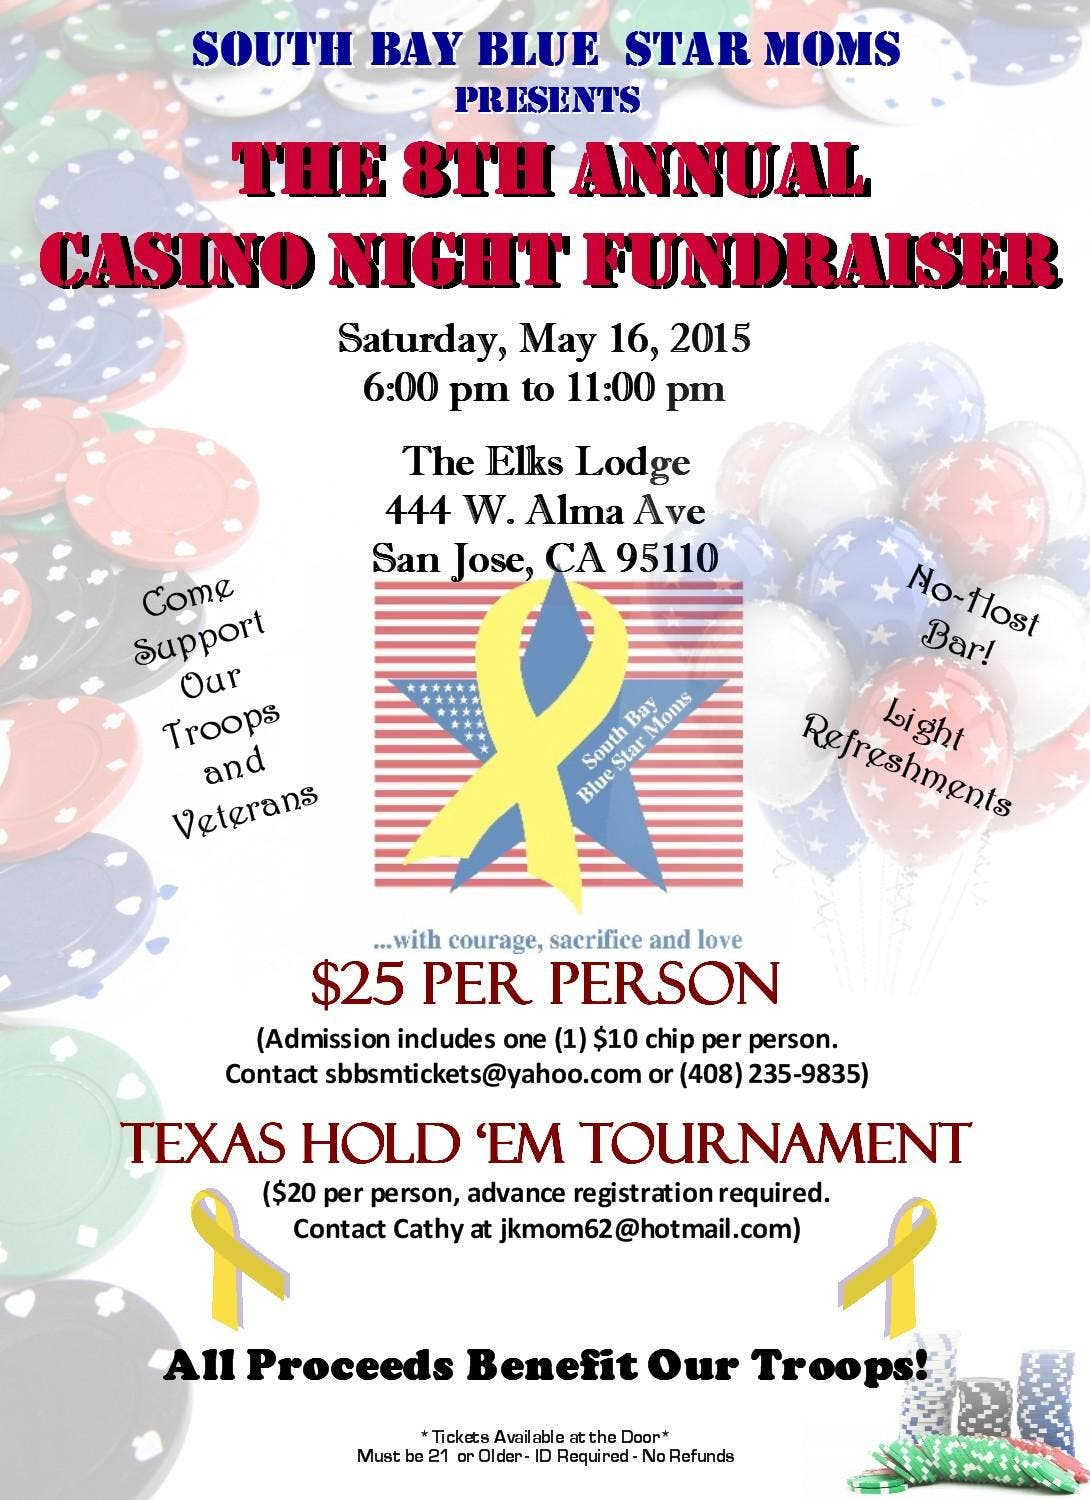 CASINO NIGHT TO SUPPORT THE TROOPS - South Bay Blue Star Moms